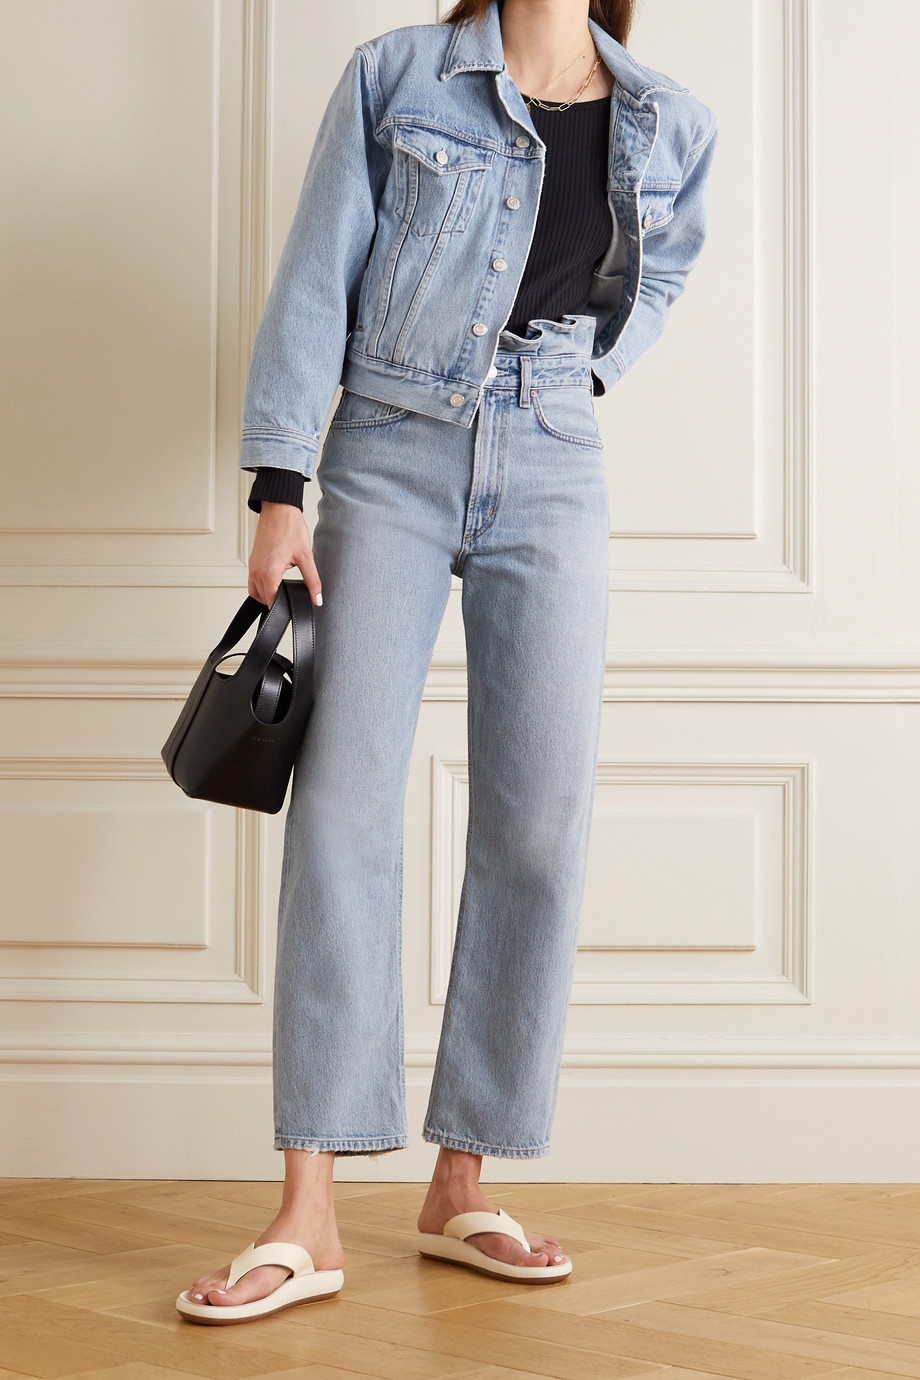 AGOLDE + NET SUSTAIN organic high-rise straight-leg jeans